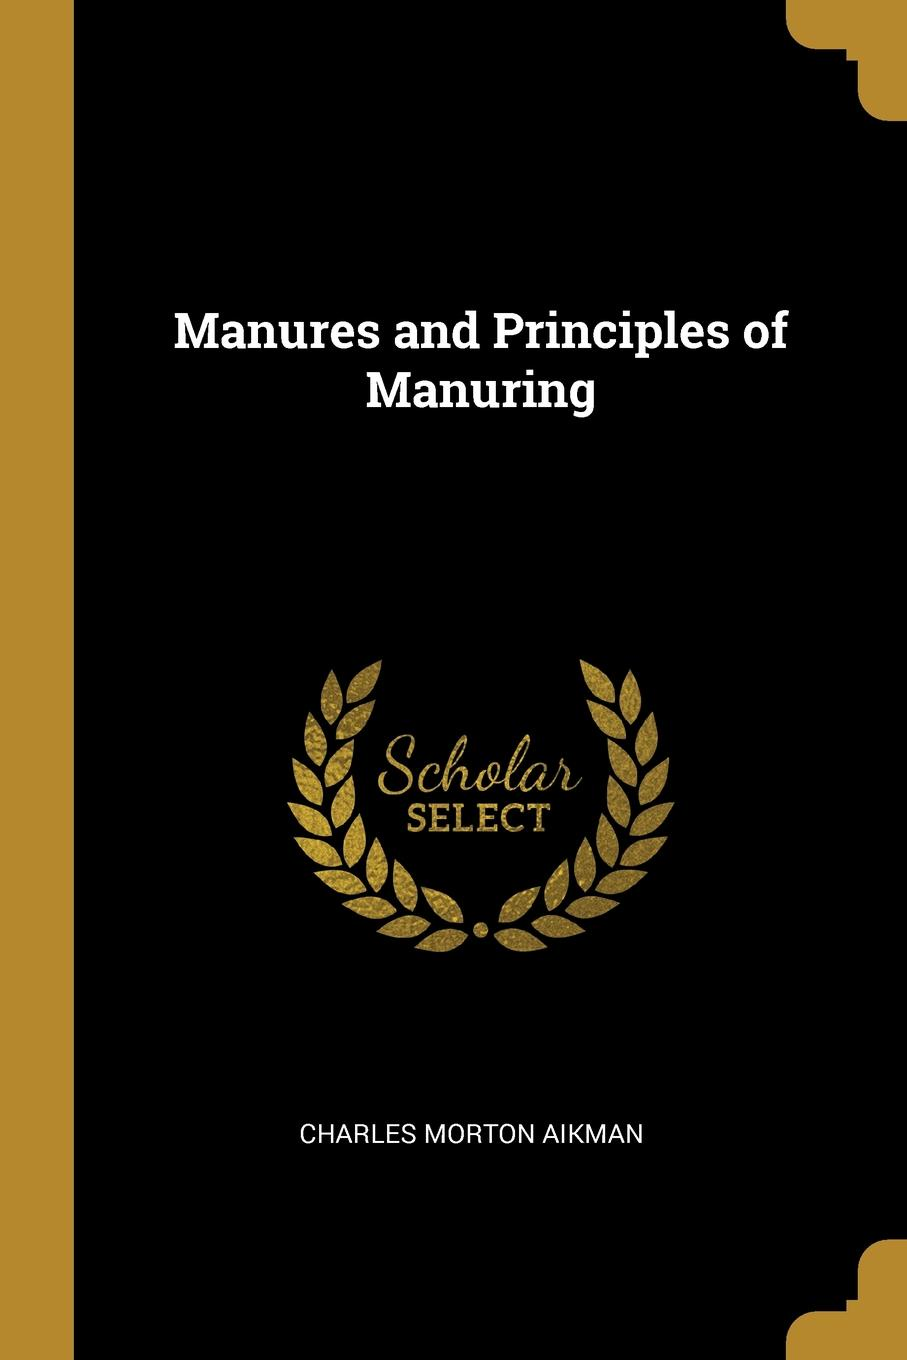 Charles Morton Aikman. Manures and Principles of Manuring